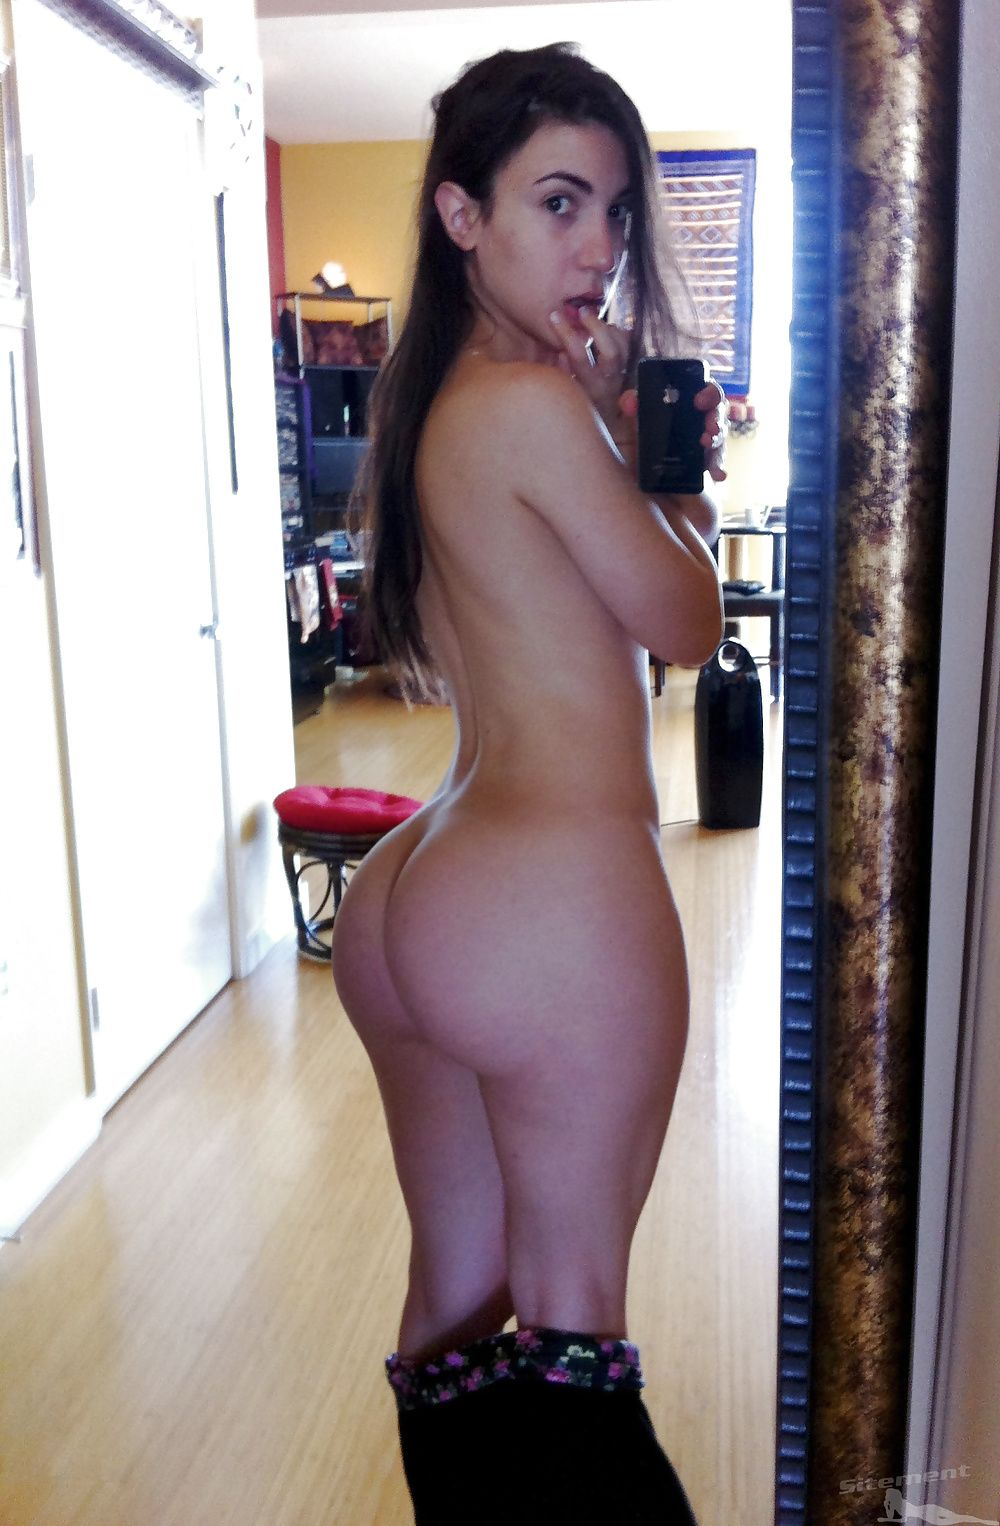 naked booty pics in the mirror